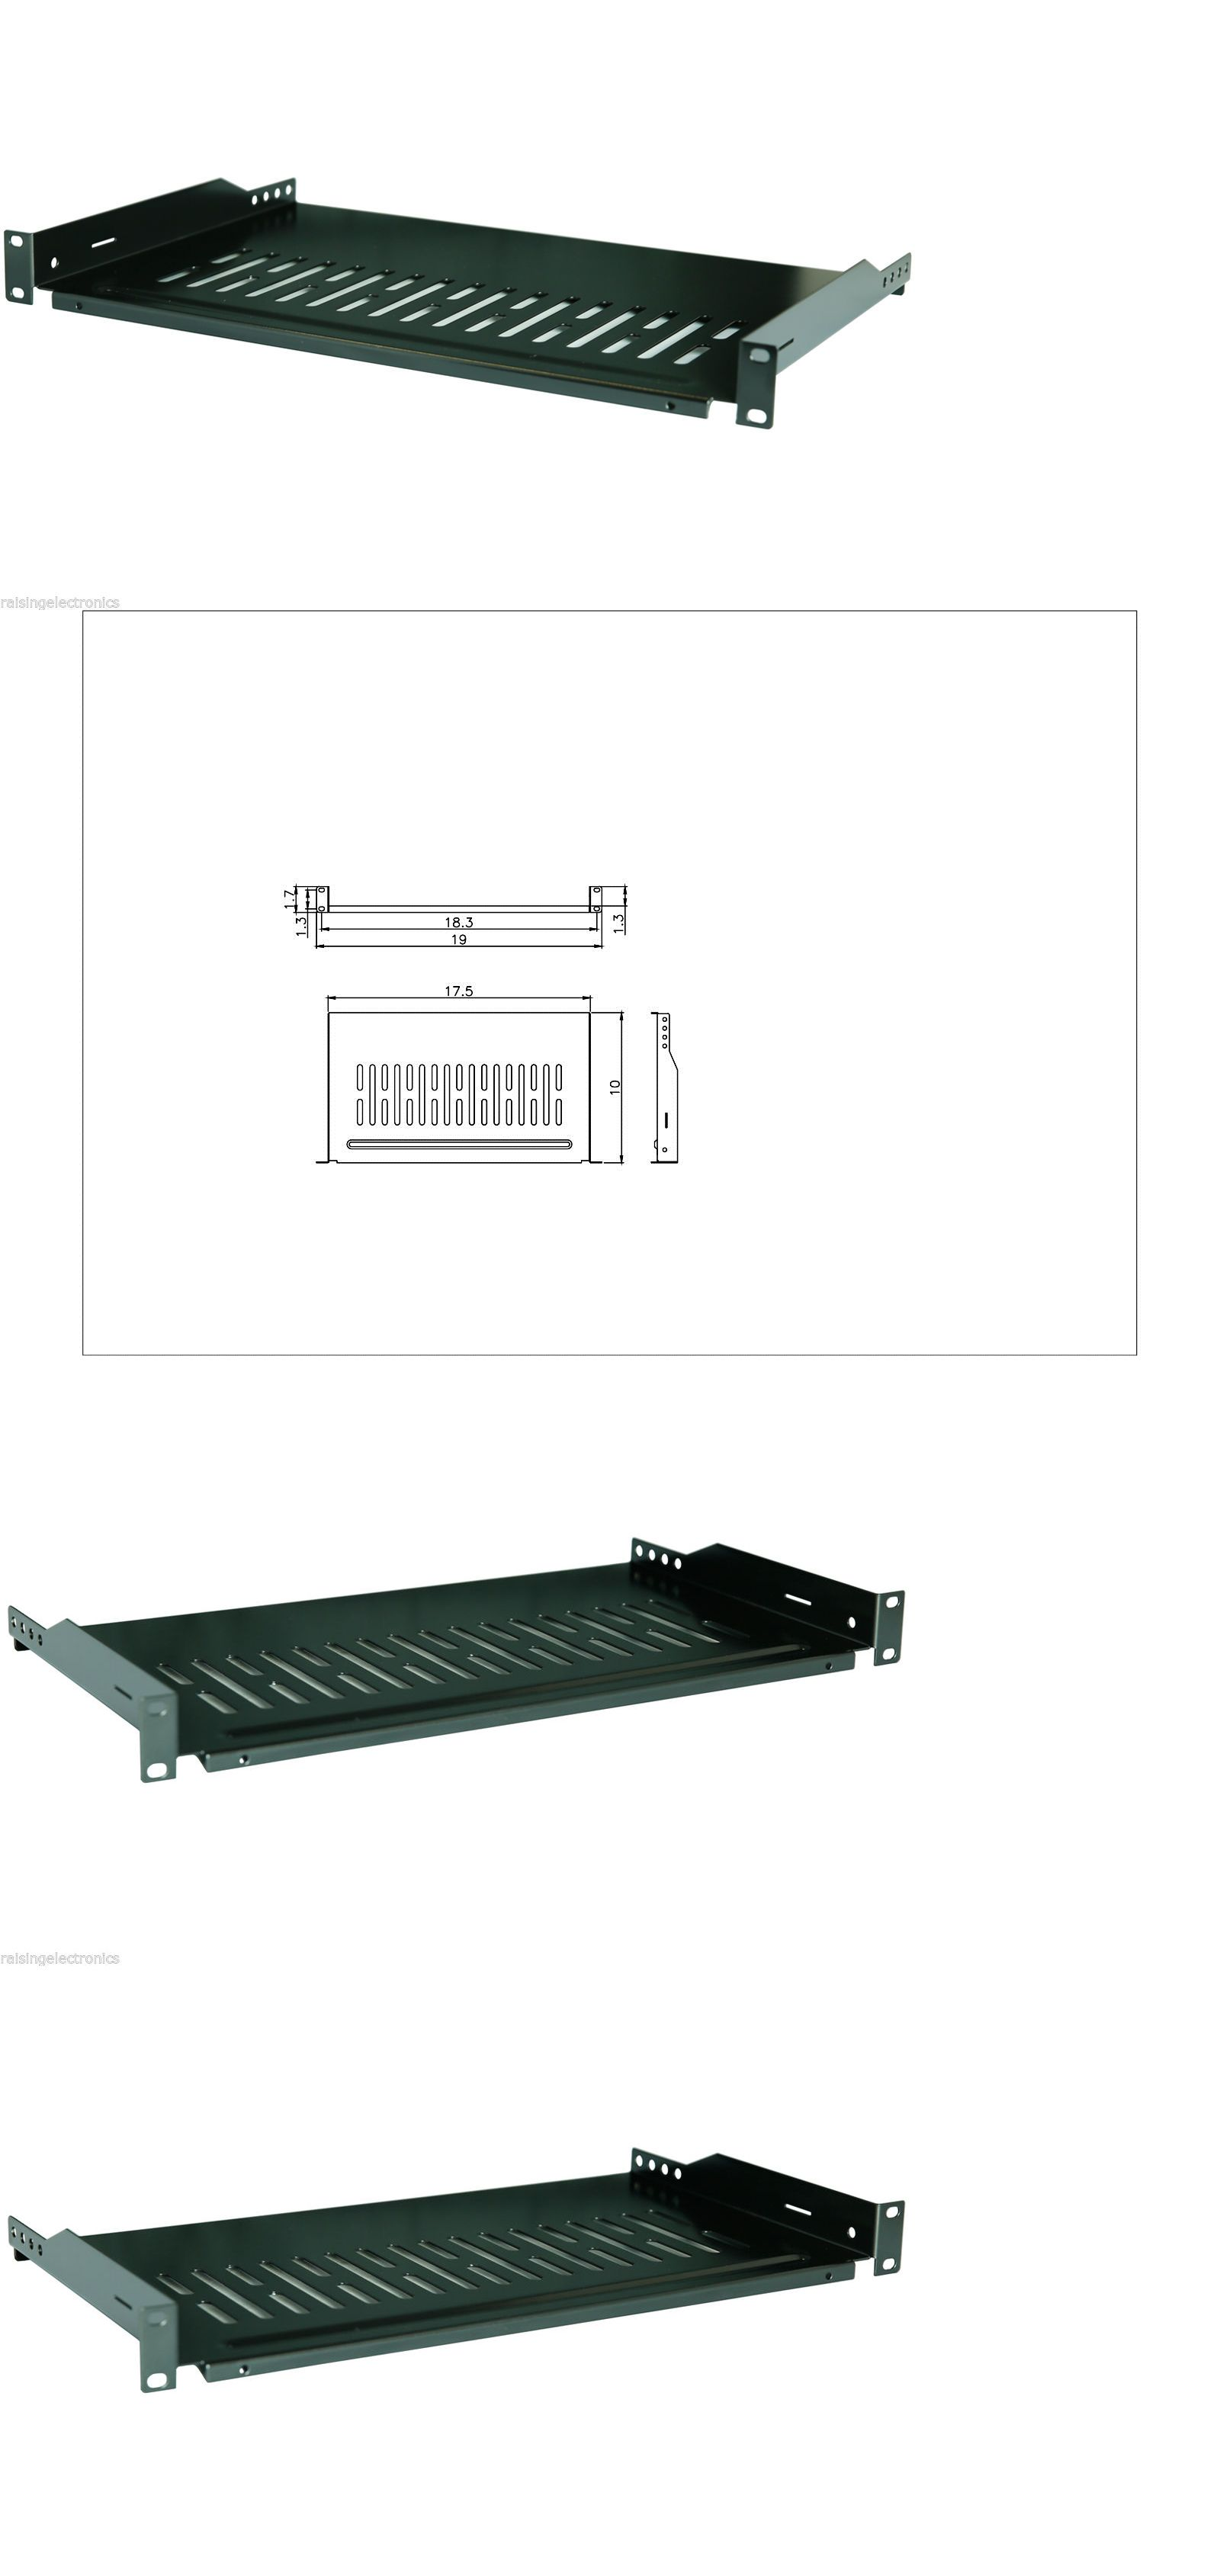 2 Pack Cantilever Server Shelf Vented Shelves Rack Mount 19 1u 10 250mm Deep Wall Mount Rack Open Frame Server Rack